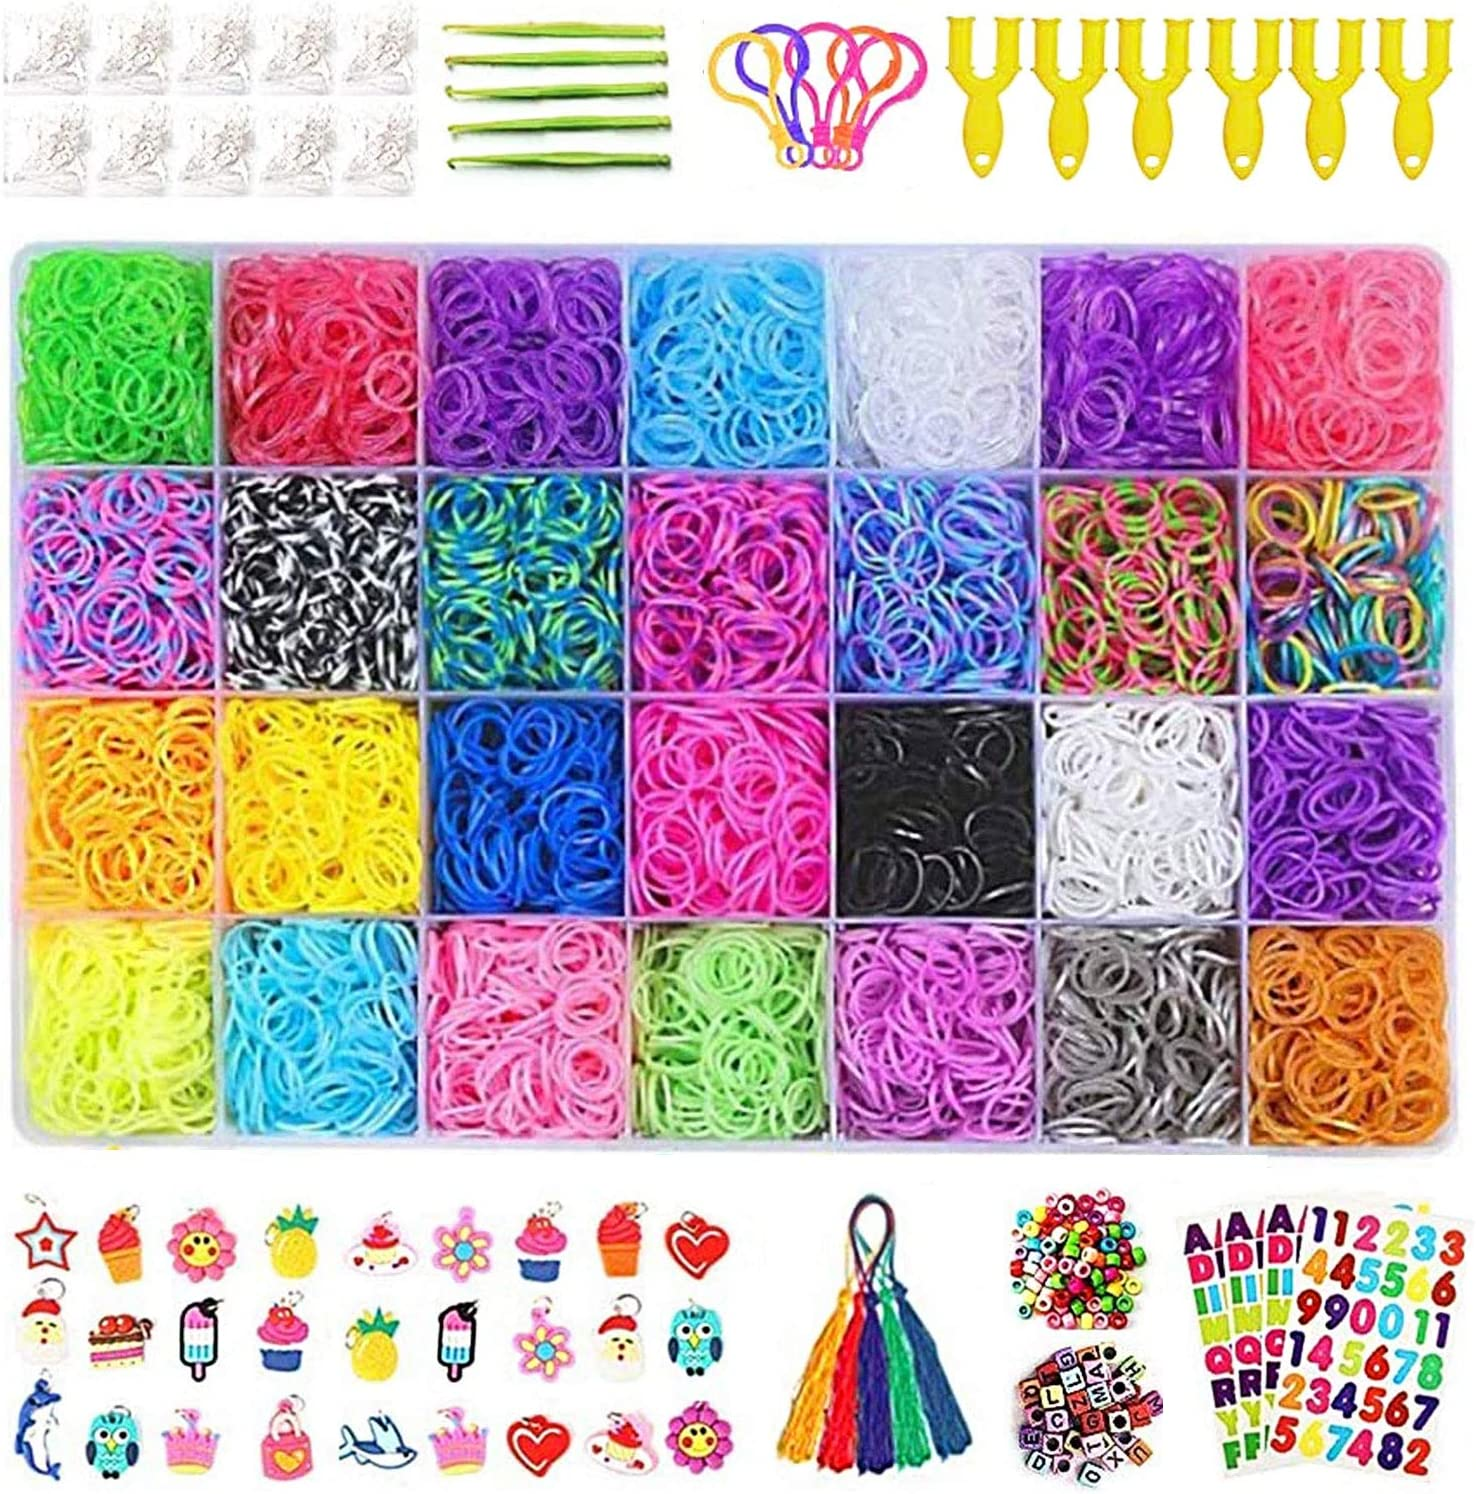 Rainbow Rubber Band Supplement Kit,11900 Rainbow Rubber Band 28 Colors,10000 Rubber Band,600S Clip,140 Beads,35 ABC Letters,30 Pendants,10 Backpack Hooks,5 Tassel,5...